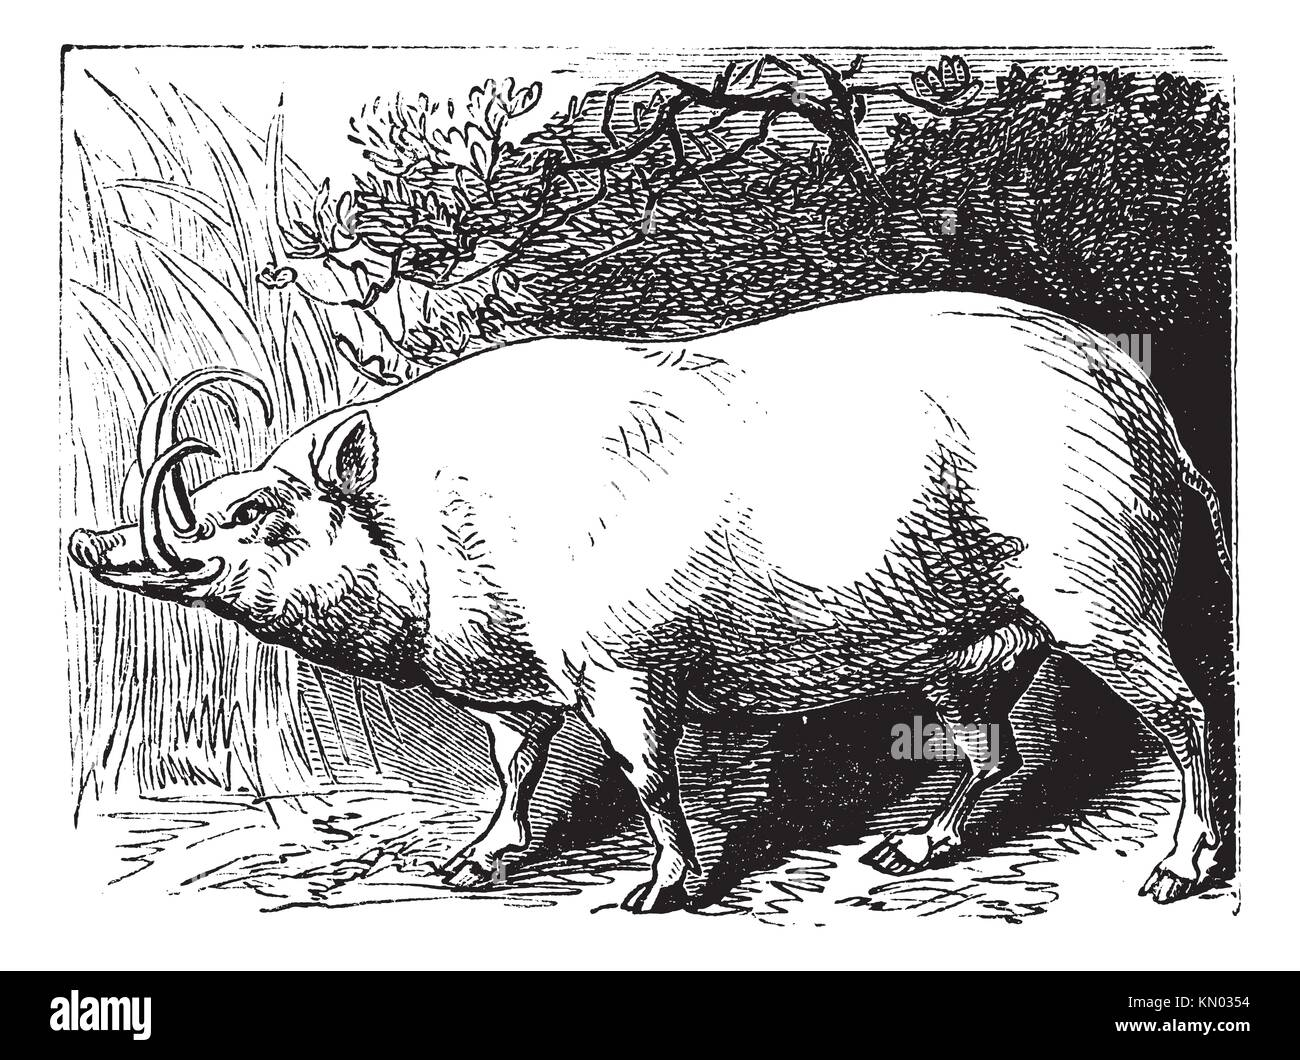 The Babirusa, Babyrousa, Buru babirusa or Pig-deer  Vintage engraving  Old engraved illustration of a a pig-deer - Stock Image